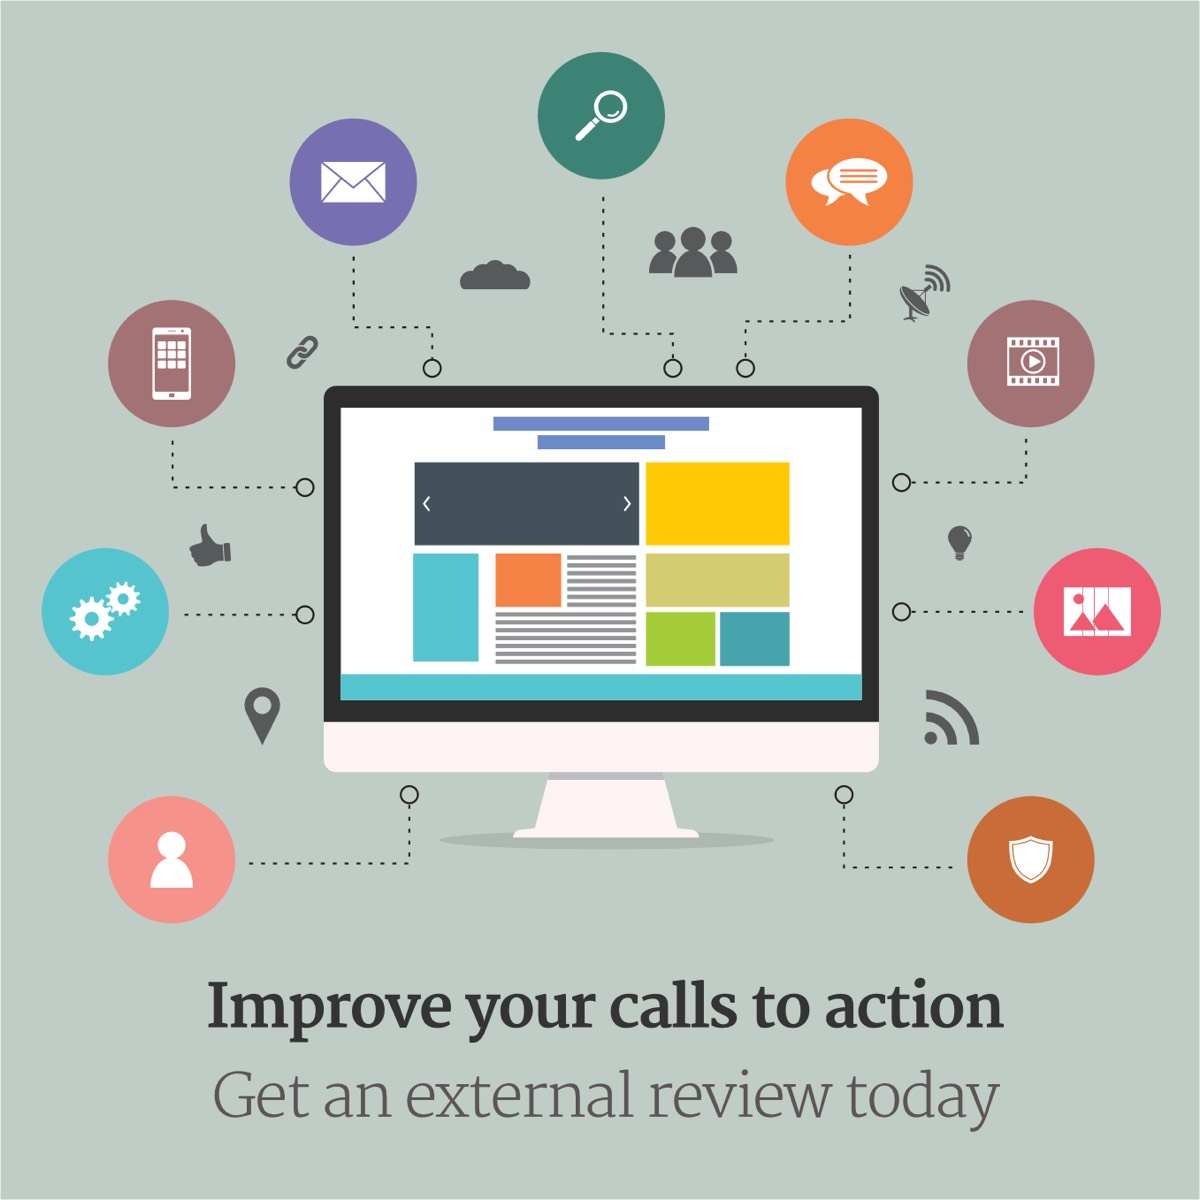 Improve your calls to action. Get a review today